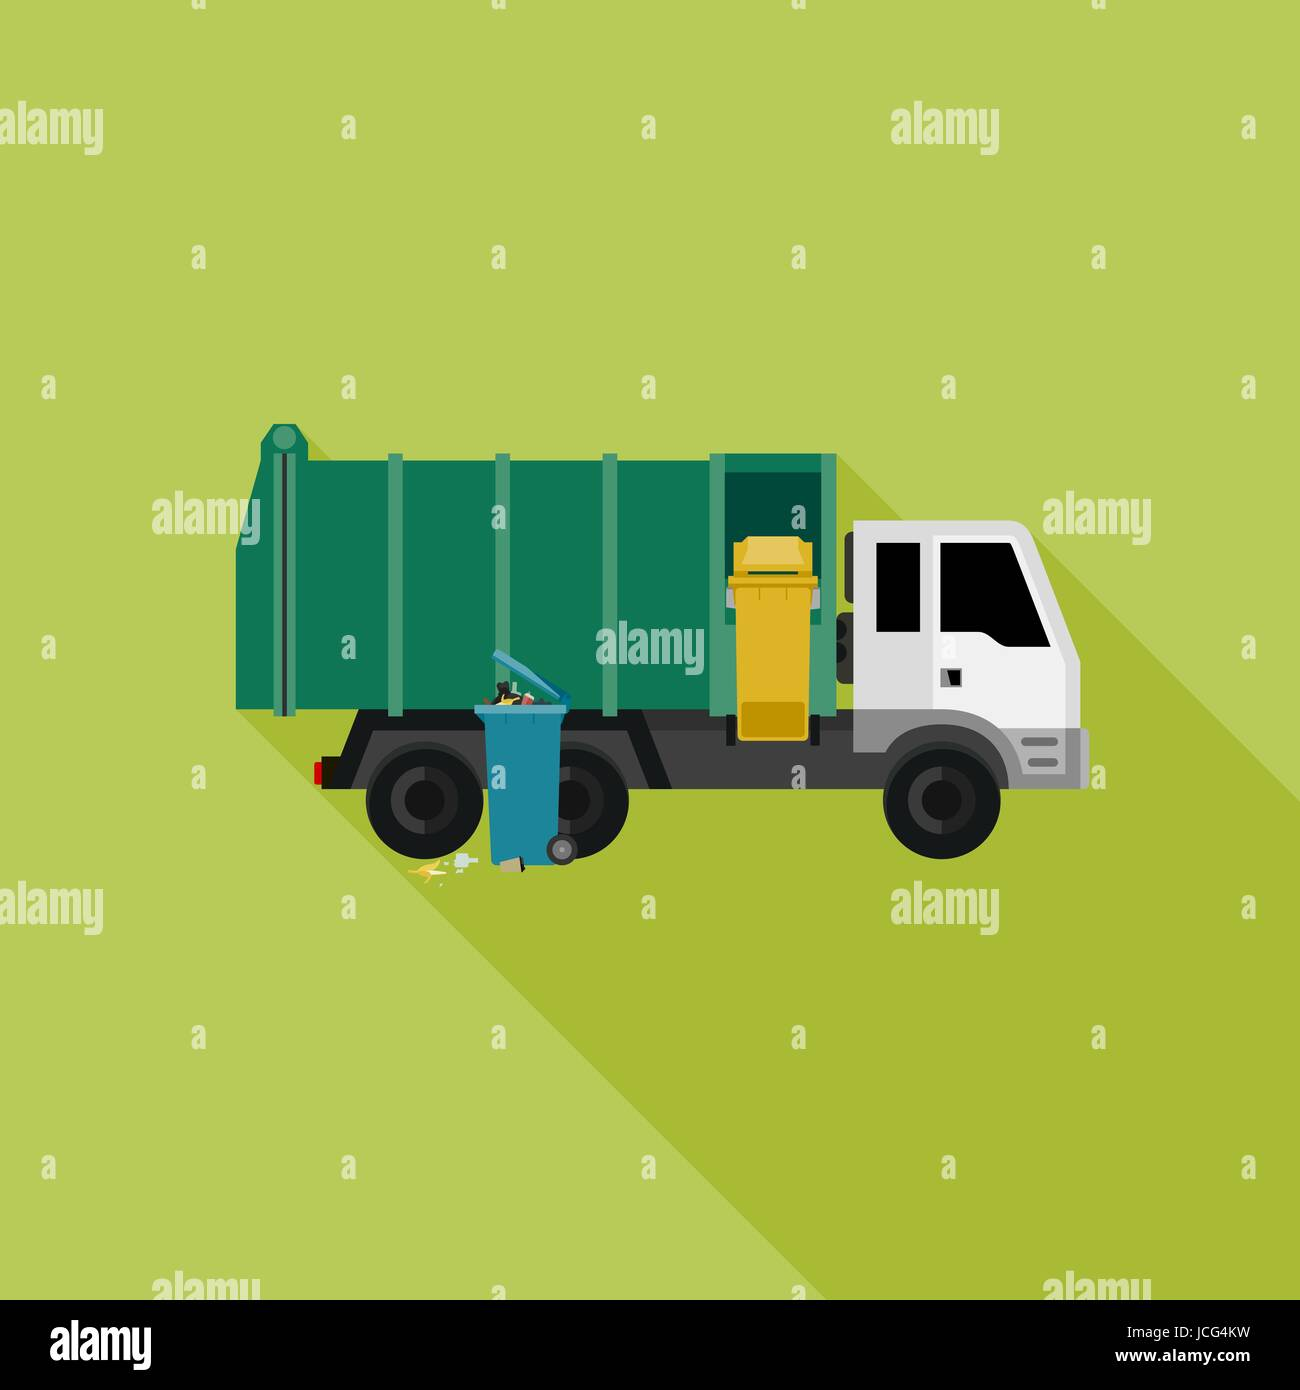 Garbage truck with long shadow - Stock Vector